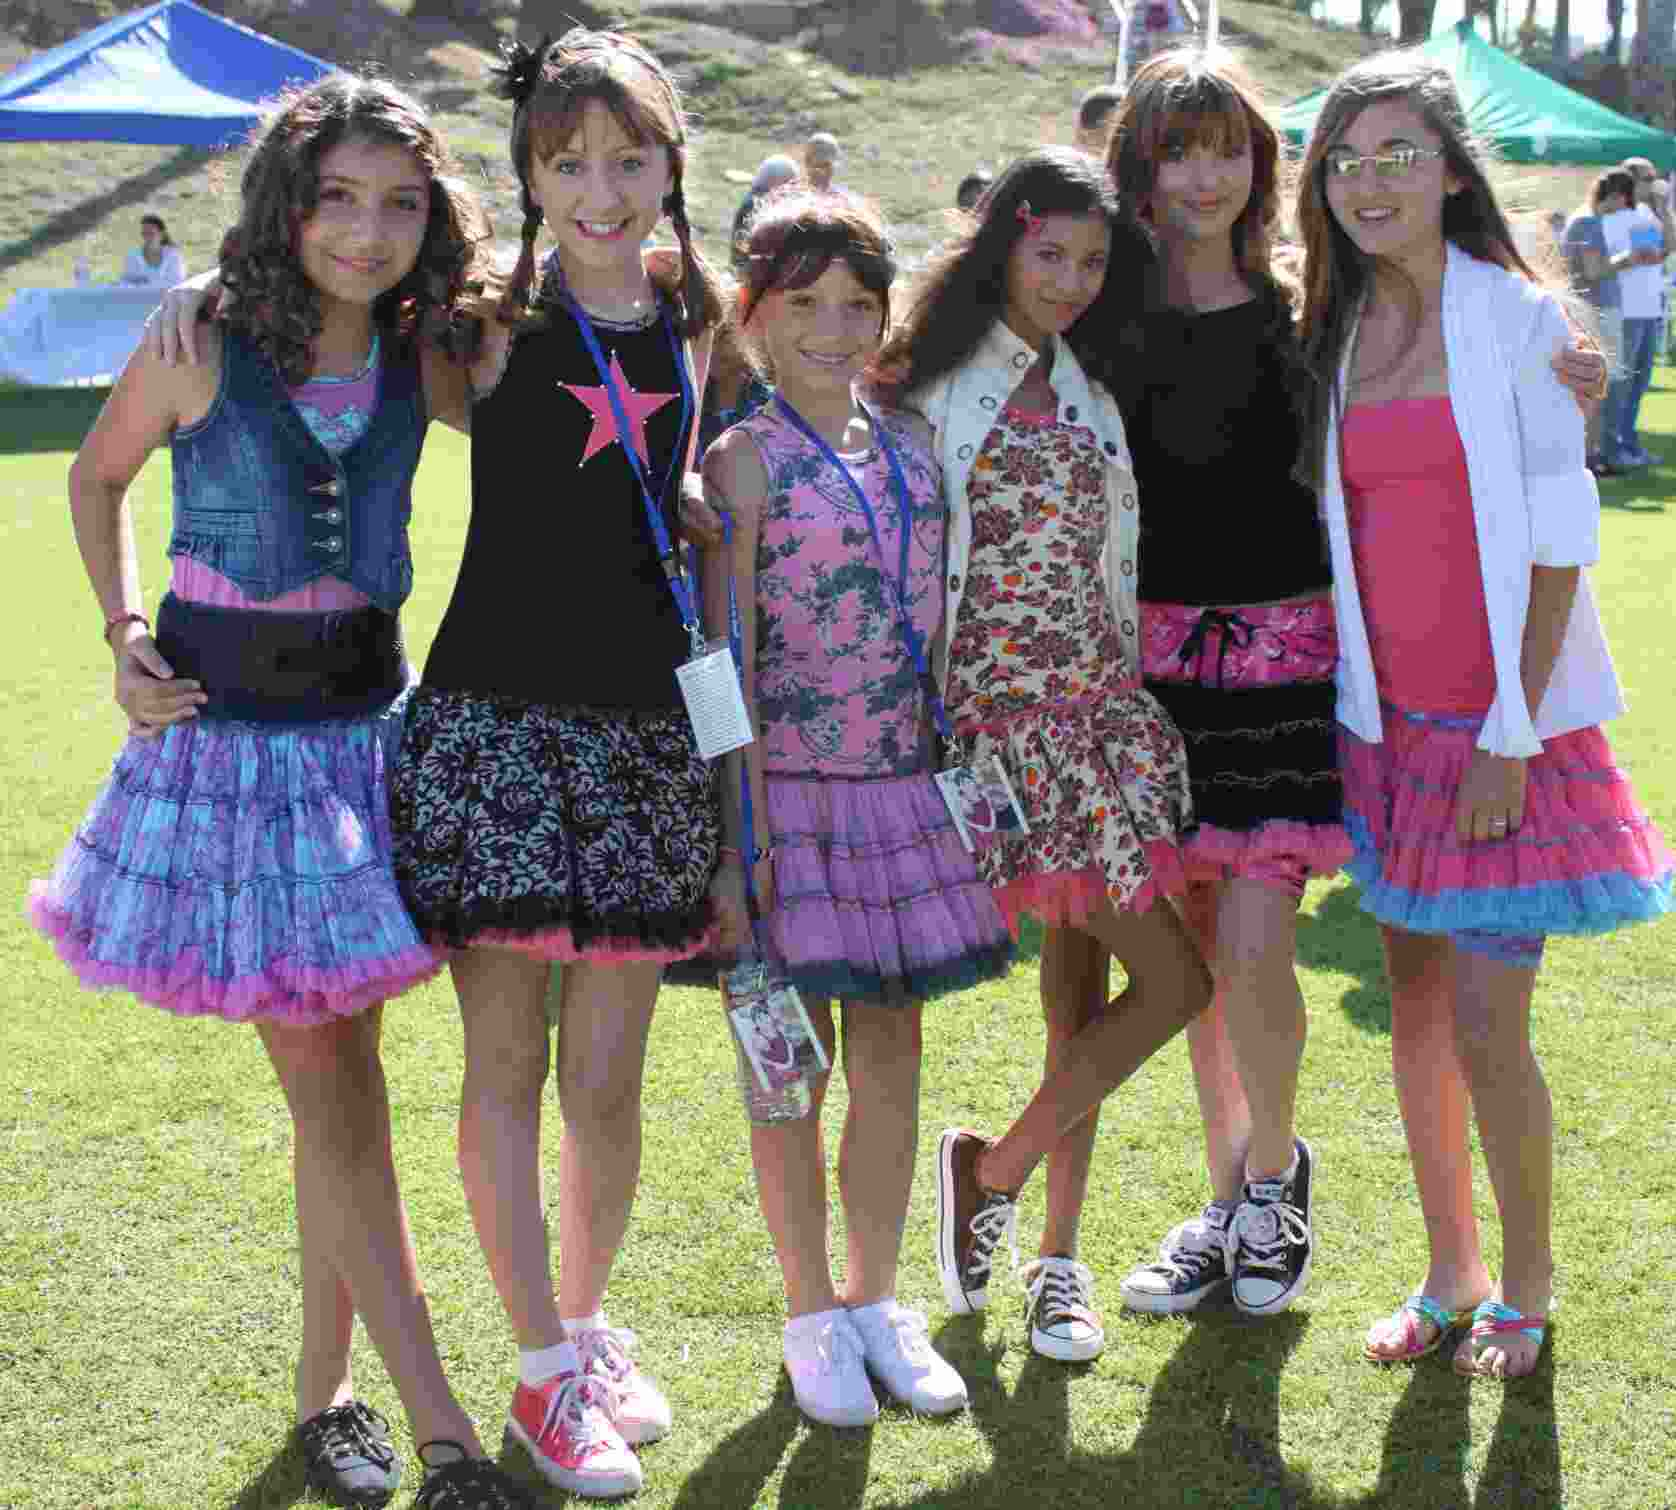 Jennessa Rose, Allisyn Arm,Madison Liesle,Olivia Grace, Bella Thorne, Rachel Fox